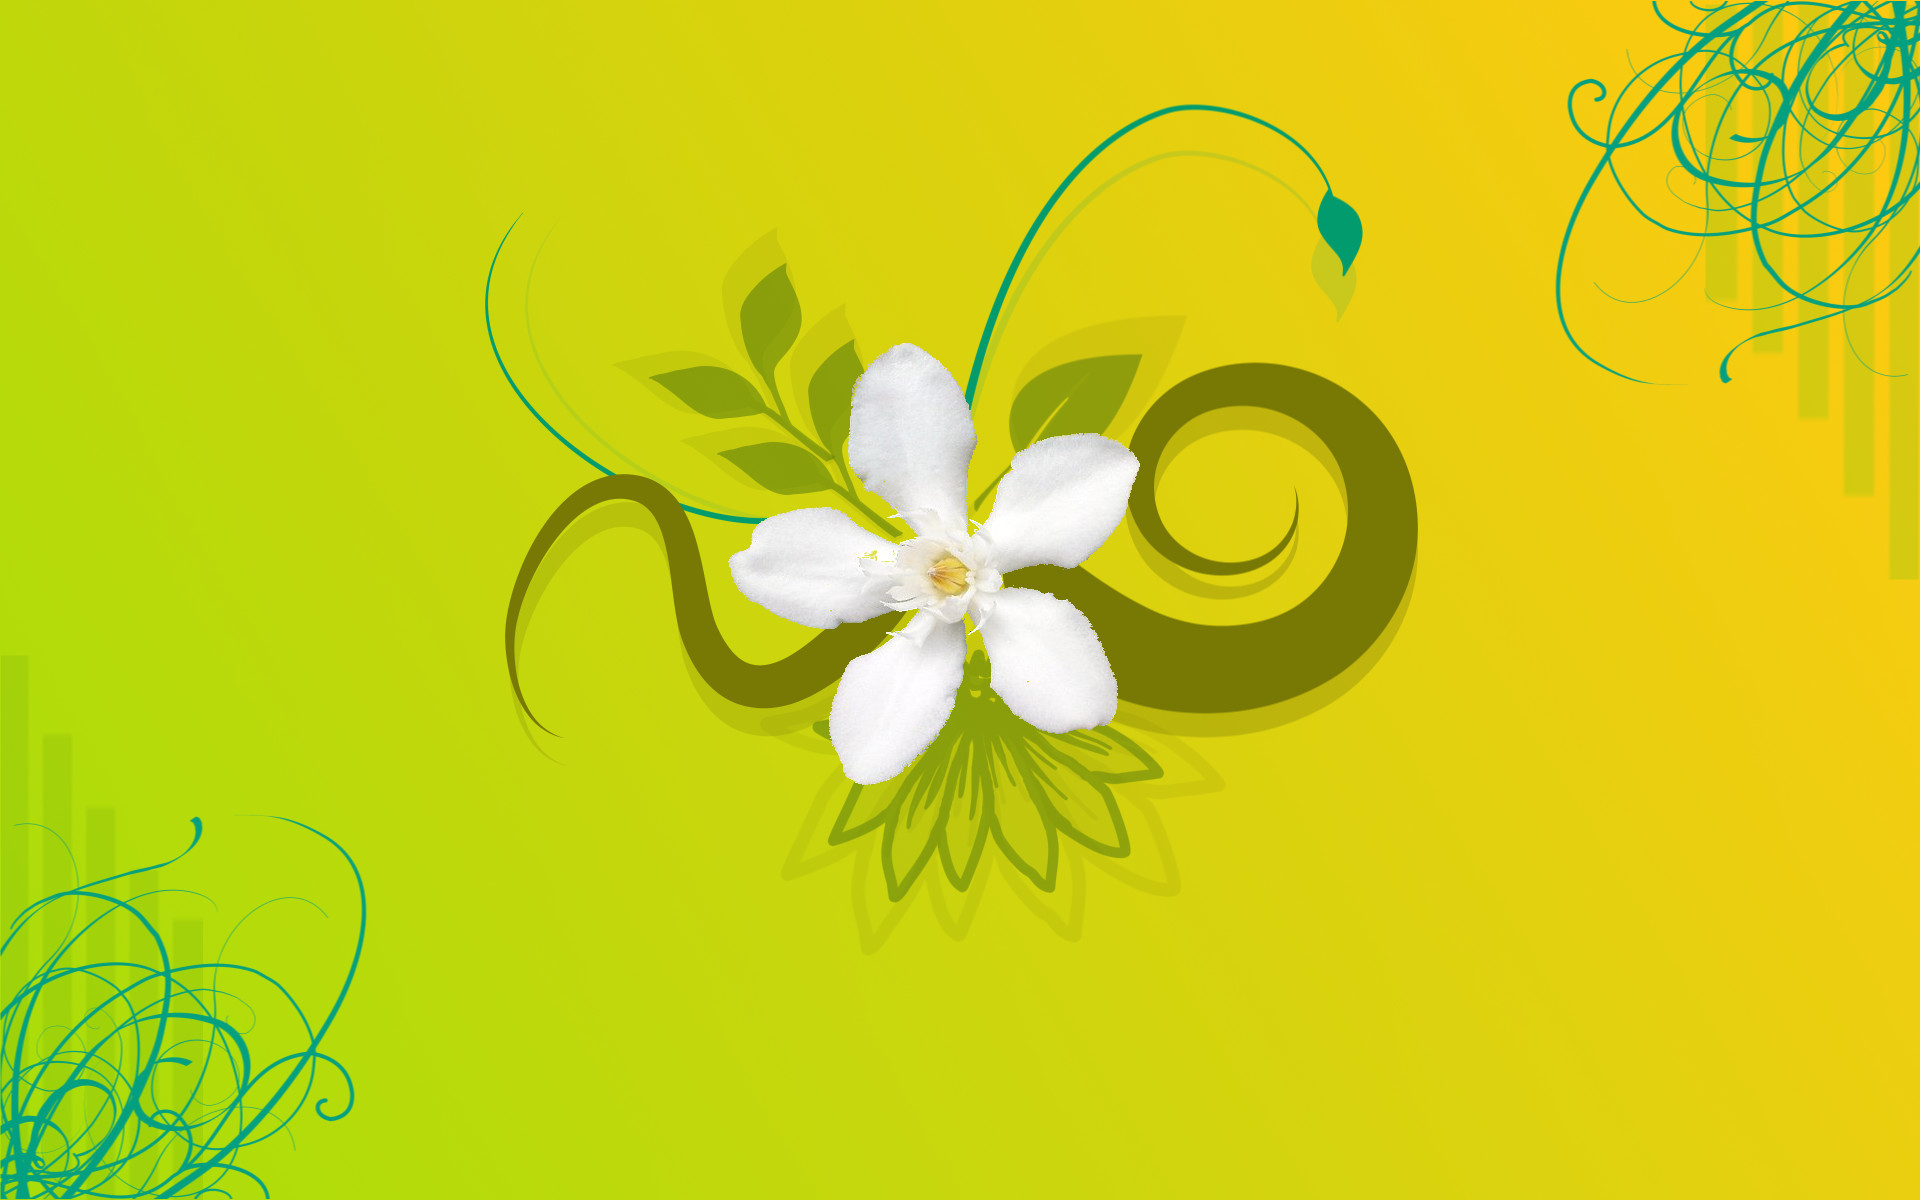 Name jasmine wallpaper 55 images 1920x1200 jasmine name and flower tattoo 22 jasmine flower wallpaper a1 izmirmasajfo